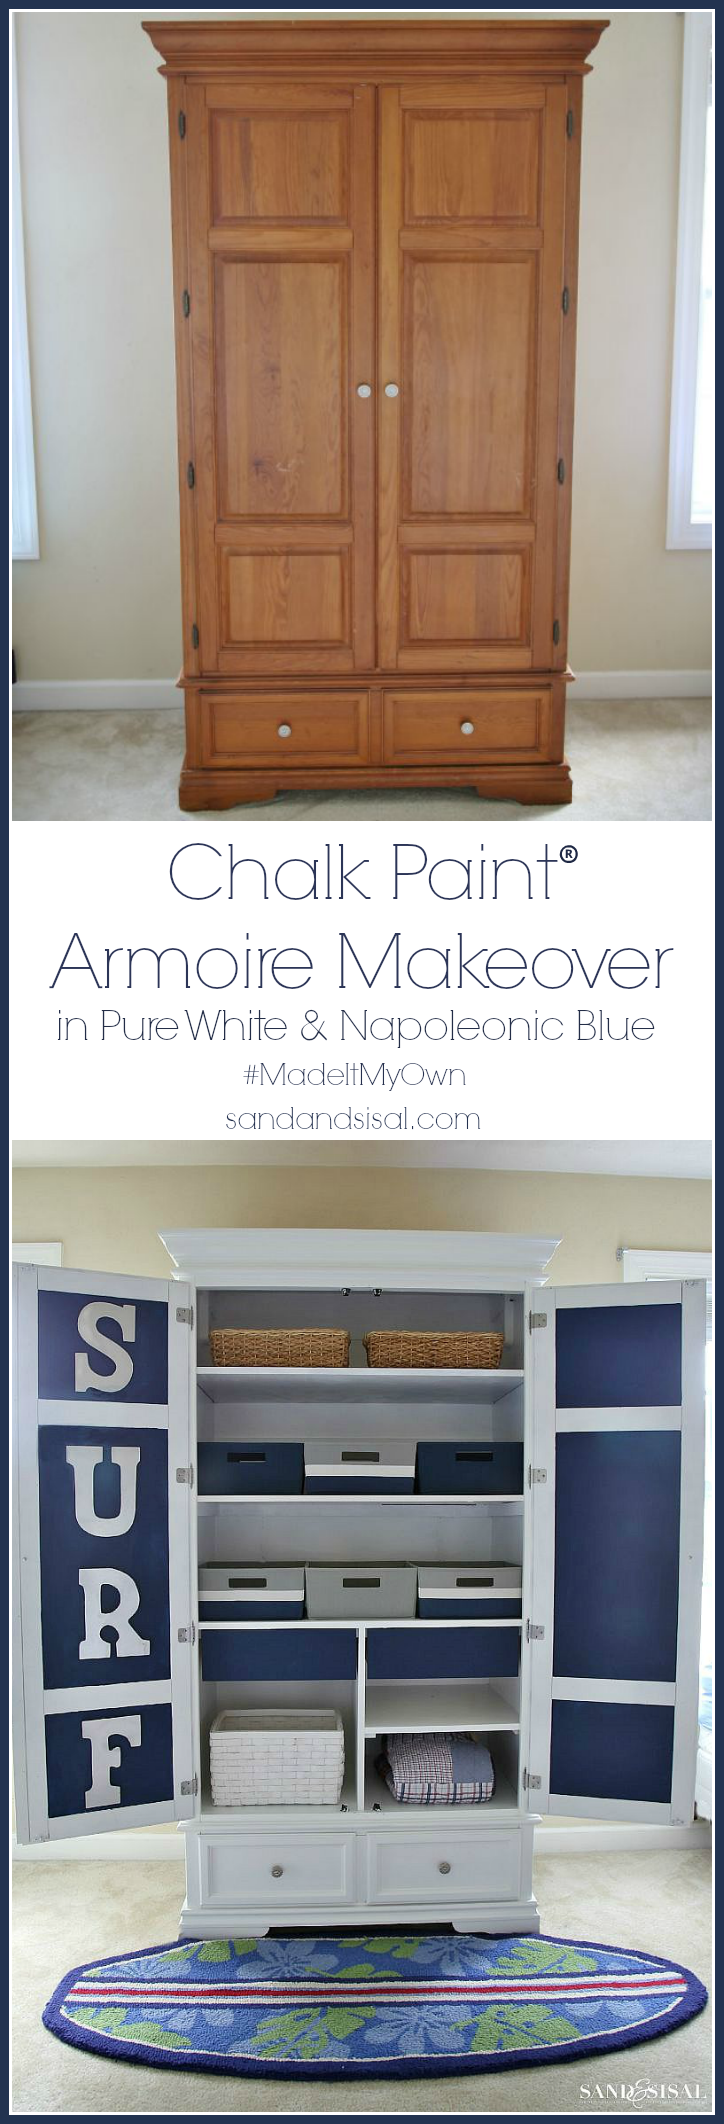 Chalk Paint Armoire Makeover in Pure White and Napoleonic Blue #madeitmyown